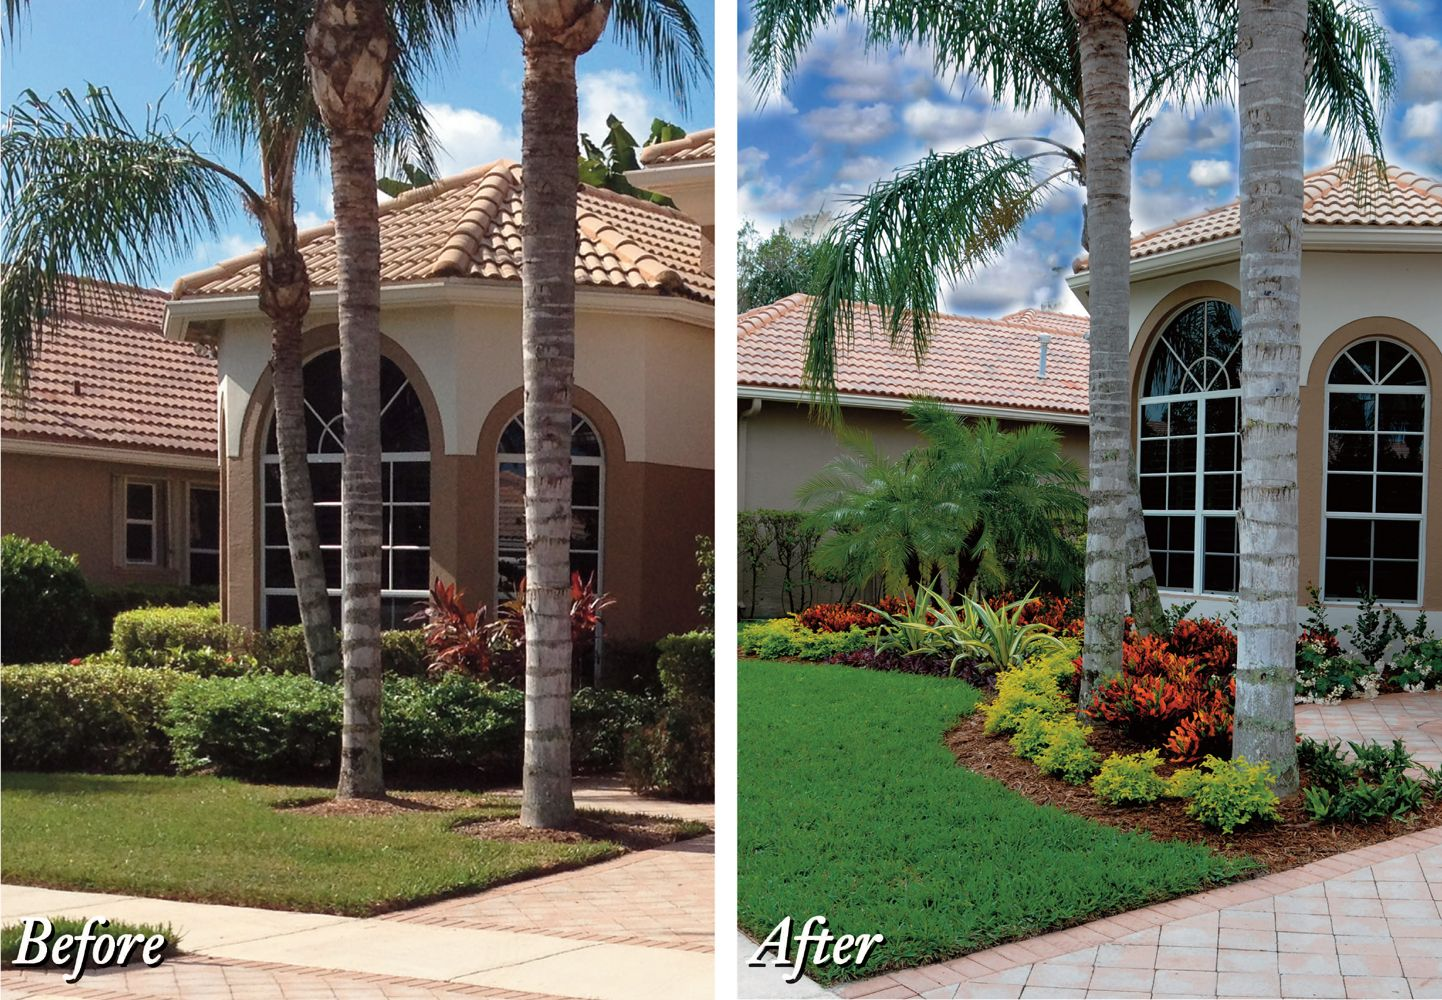 Curb Appeal In Boca Raton Landscape Design By Pamela Crawford Modern Landscape Design Modern Landscape Design Front Yard Modern Landscaping